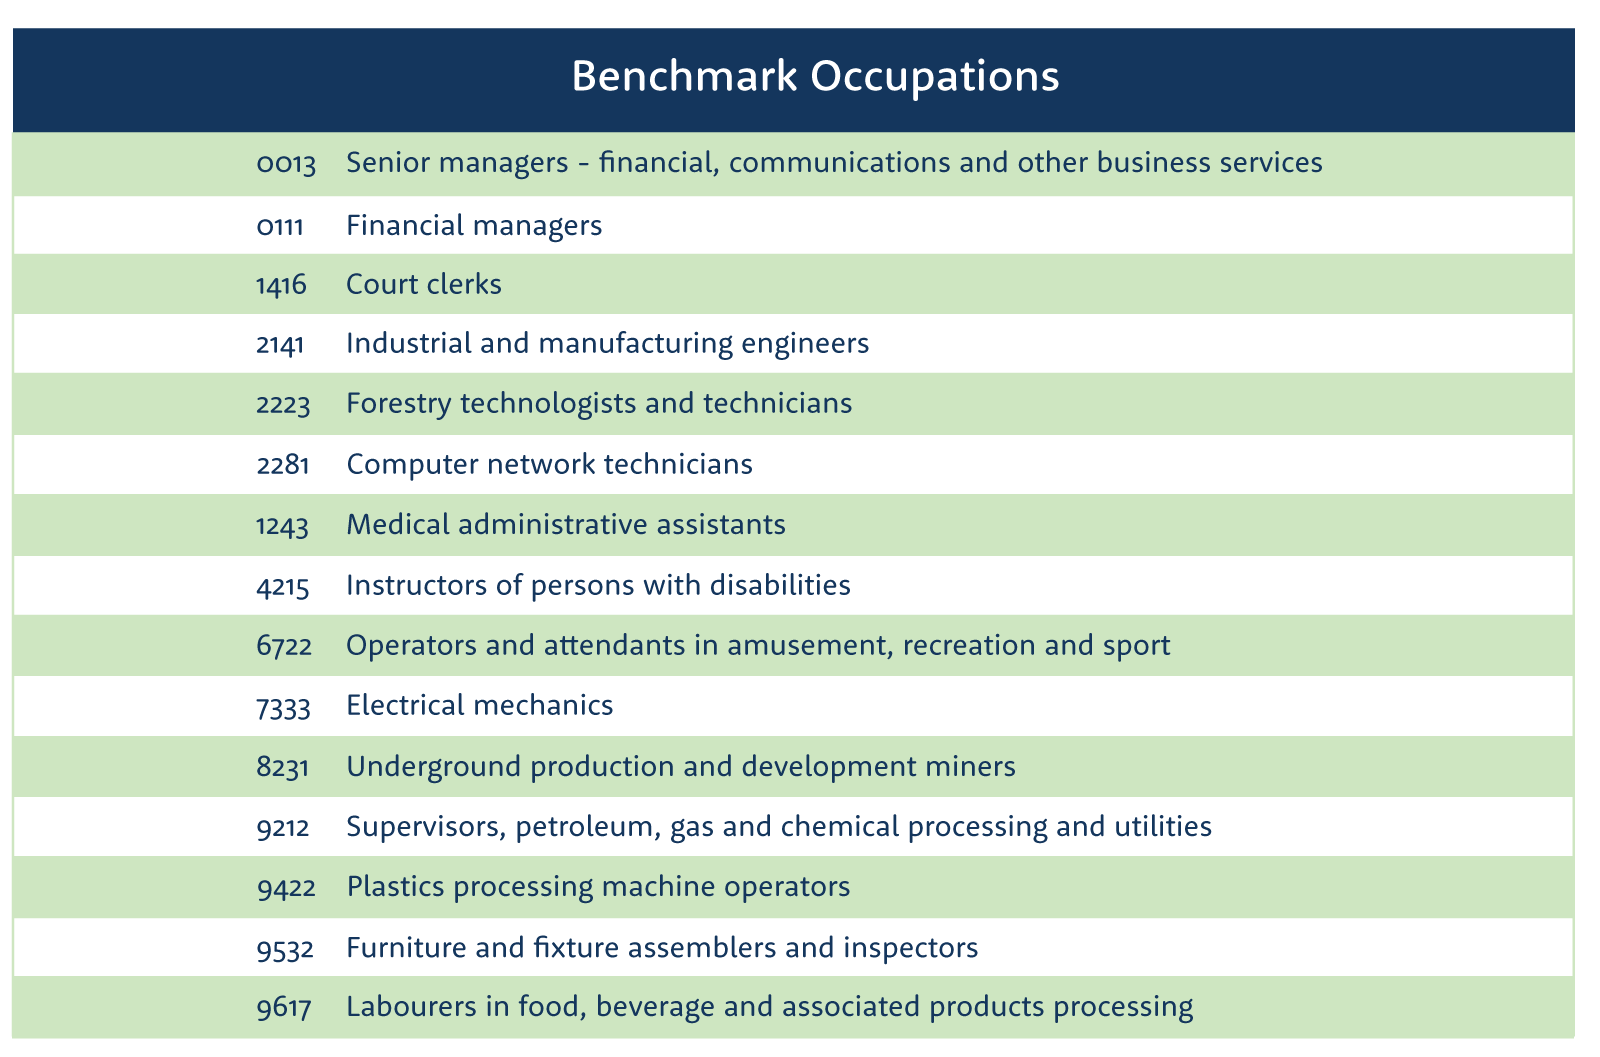 Table of benchmark observations.